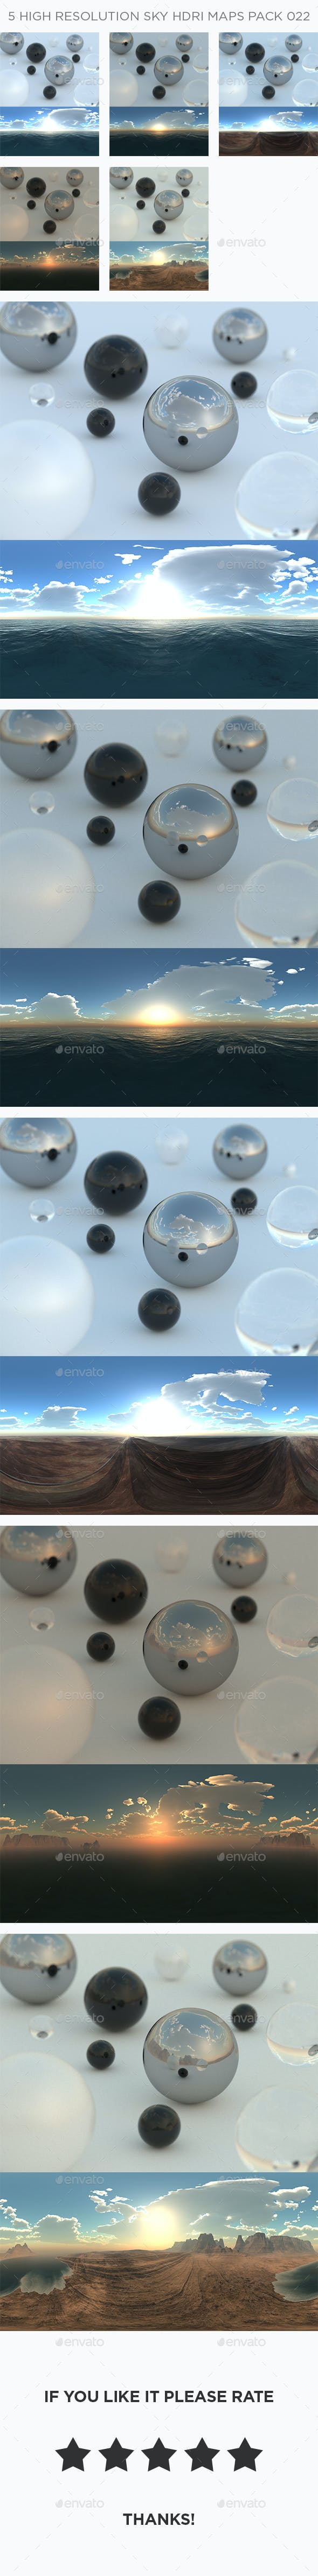 5 High Resolution Sky HDRi Maps Pack 022 - 3DOcean Item for Sale